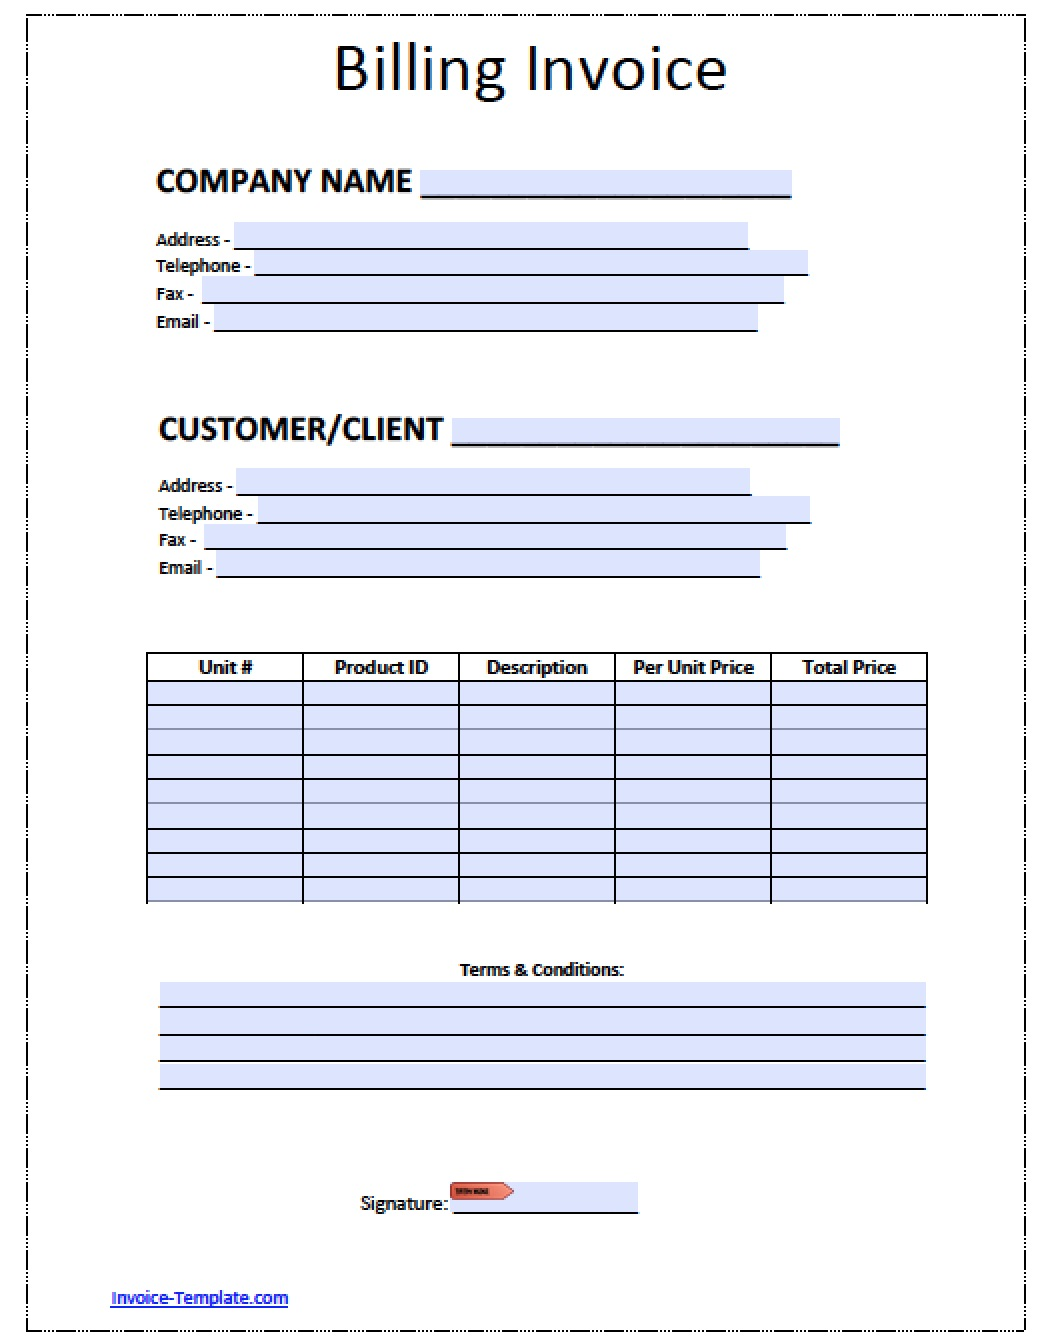 Wonderful Billing Invoice Template Word Pdf Throughout Invoice Format Pdf